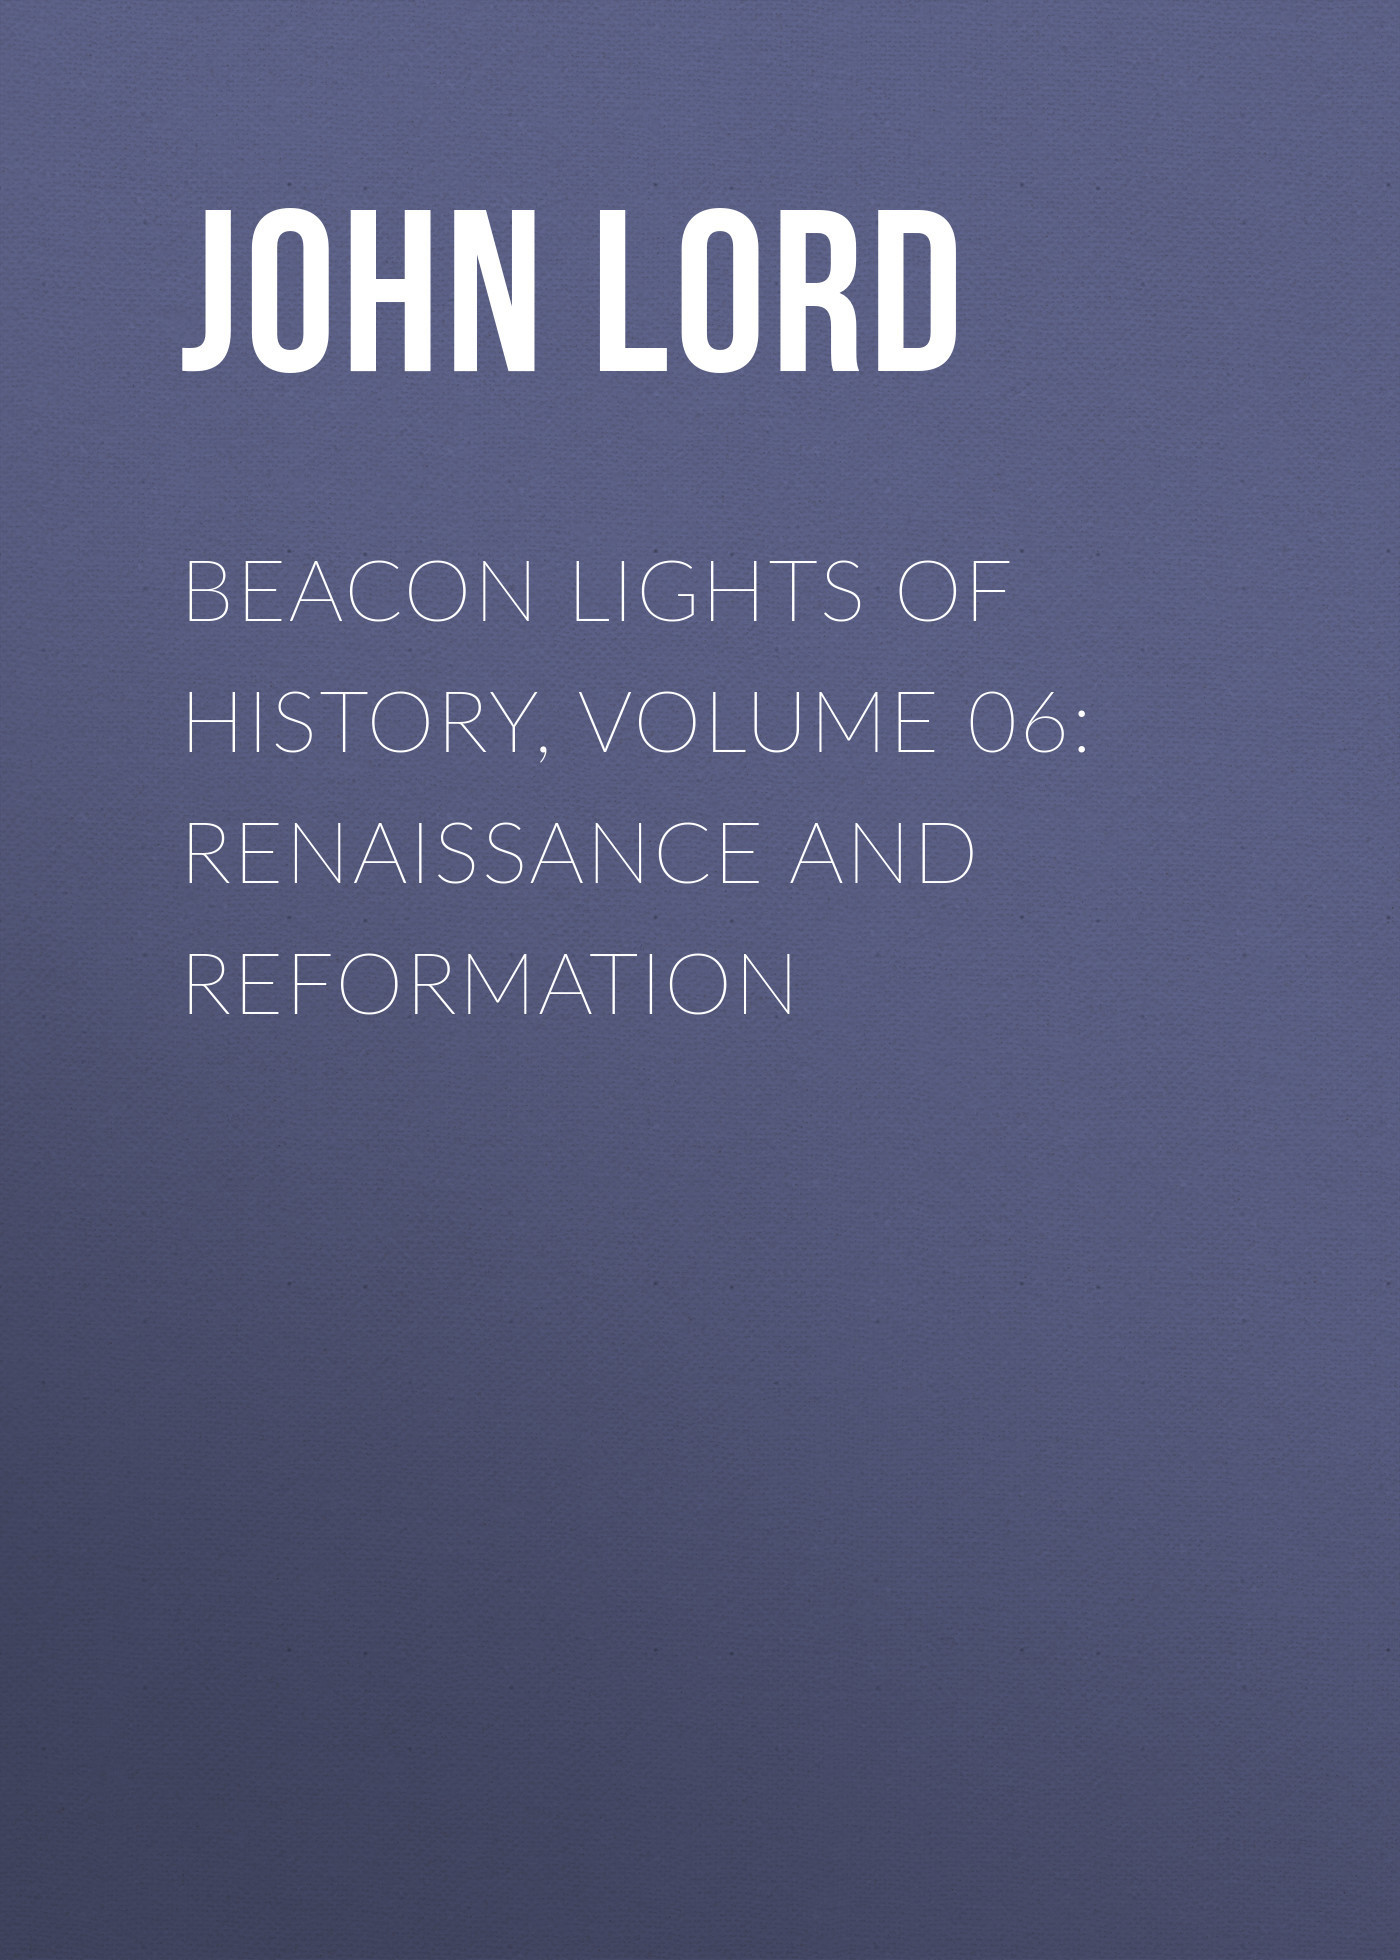 John Lord Beacon Lights of History, Volume 06: Renaissance and Reformation